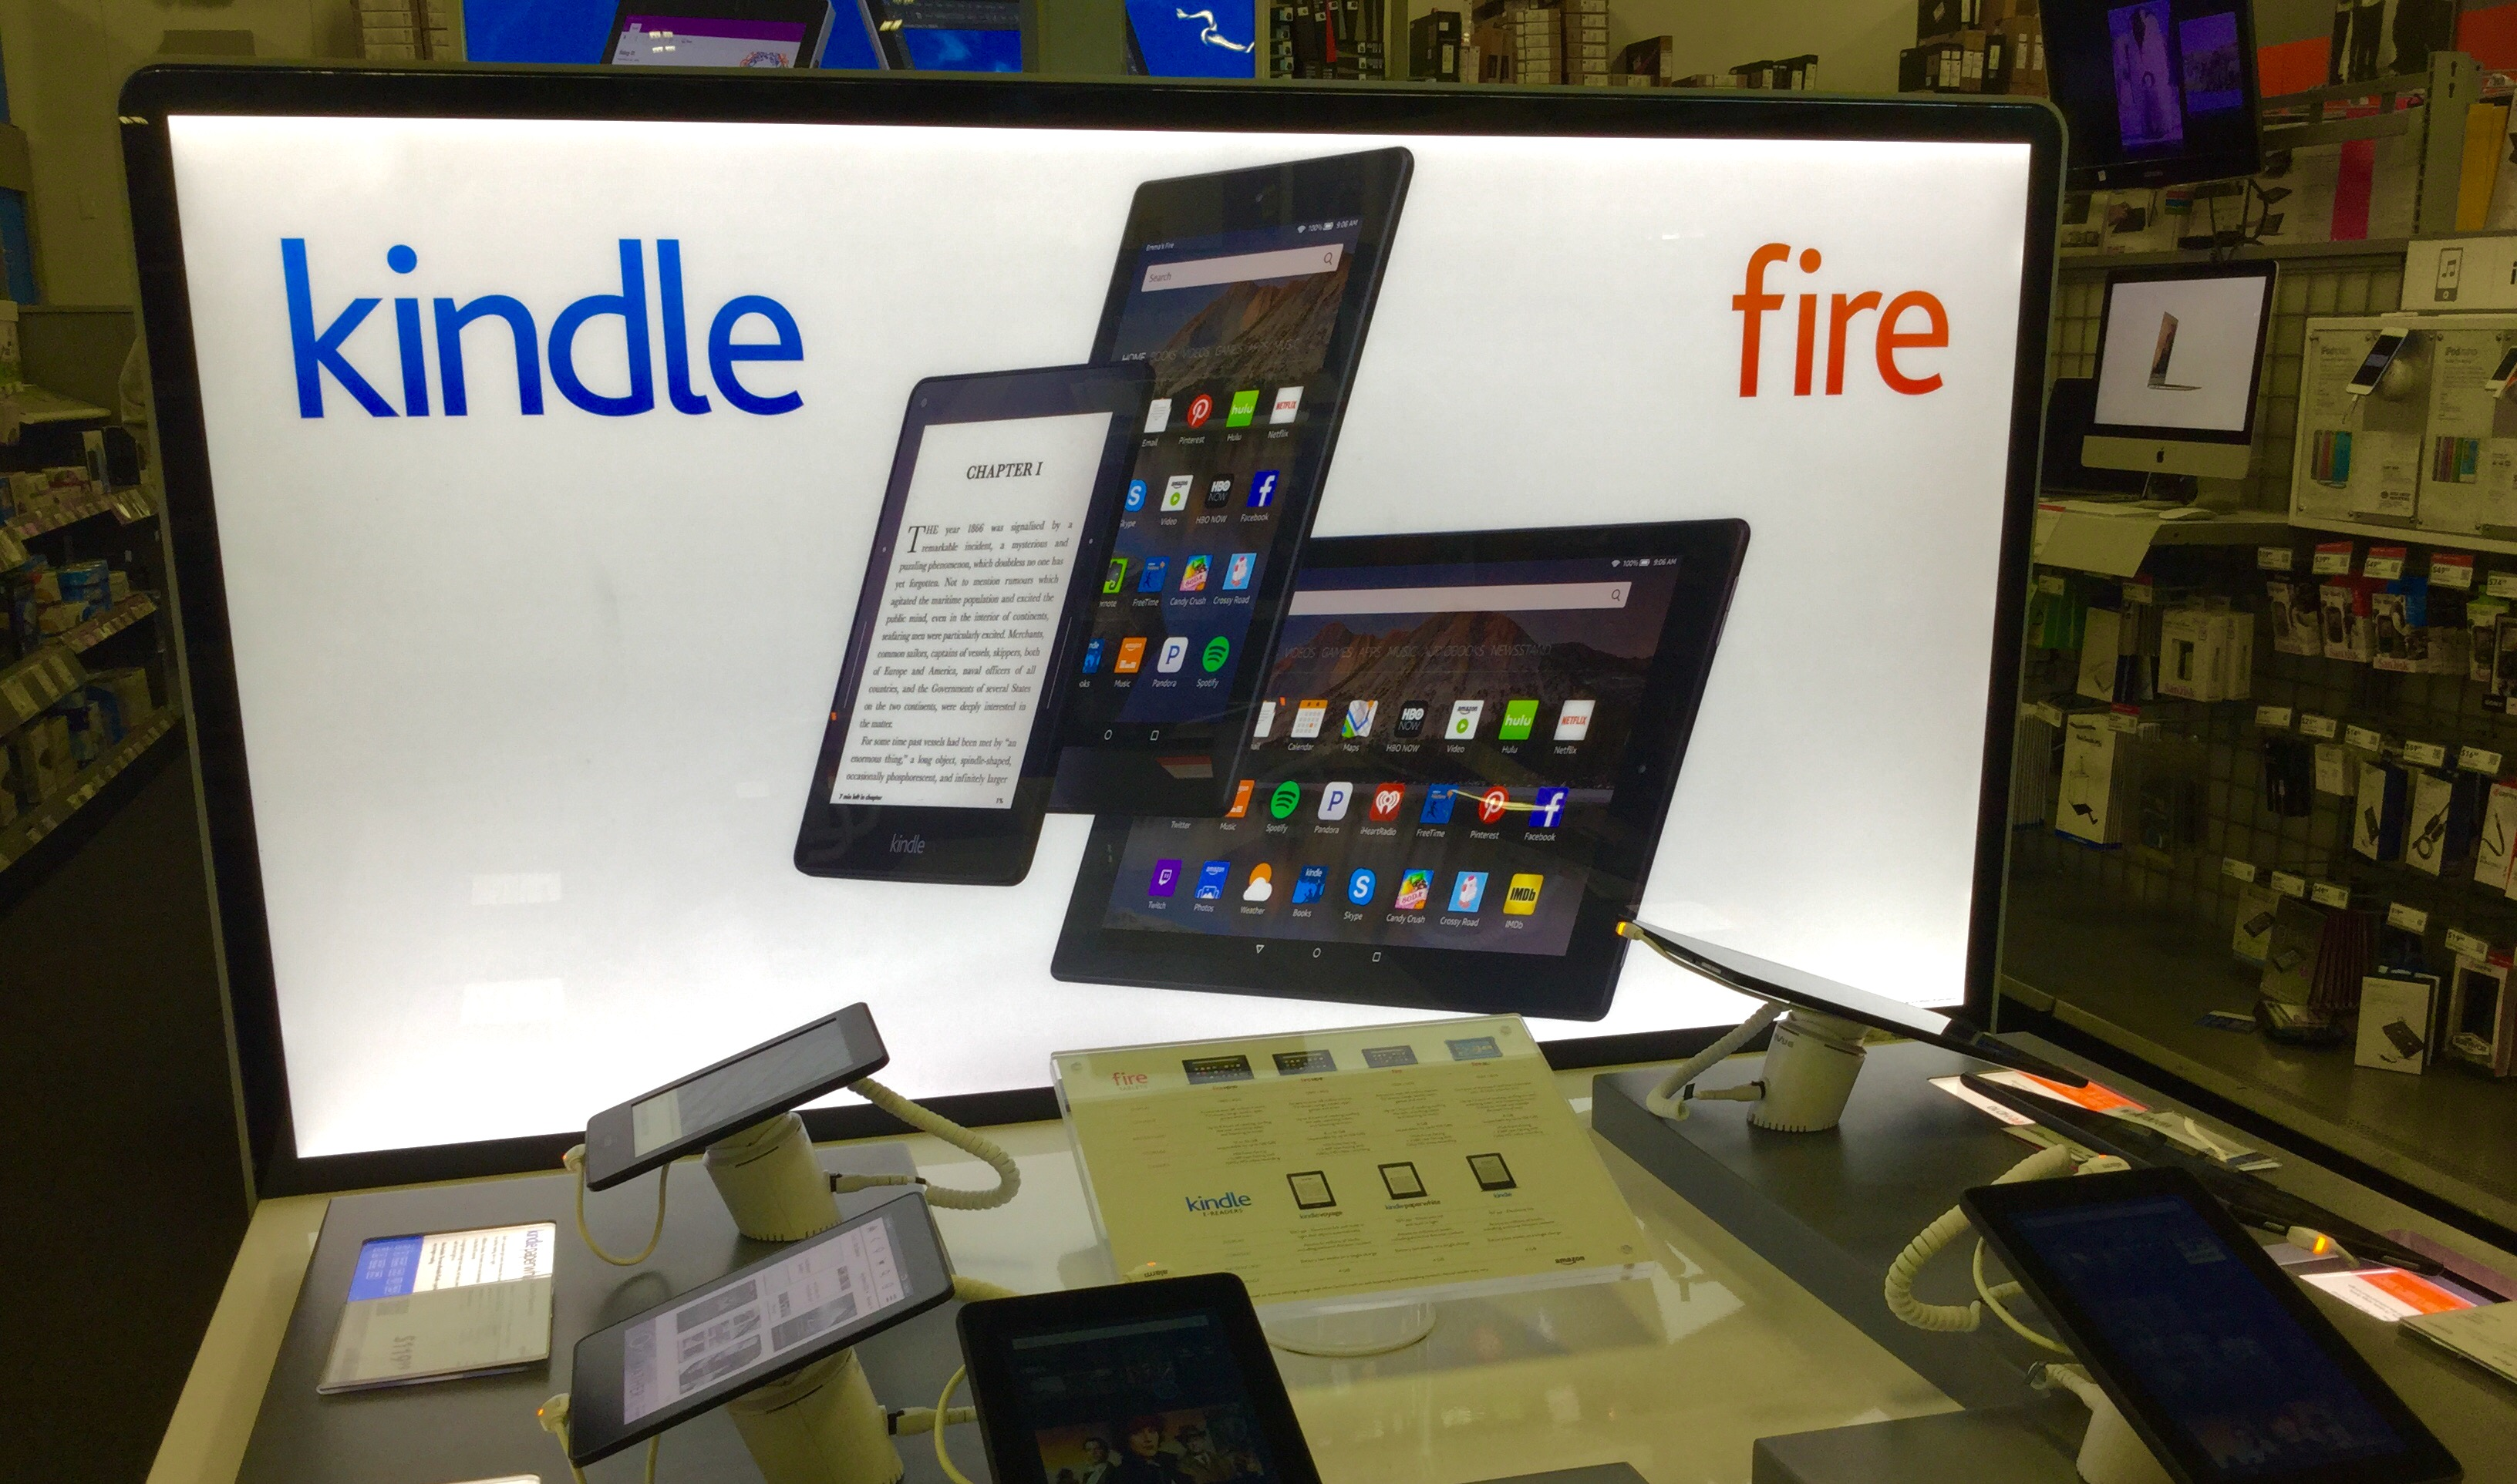 Fire tablets display